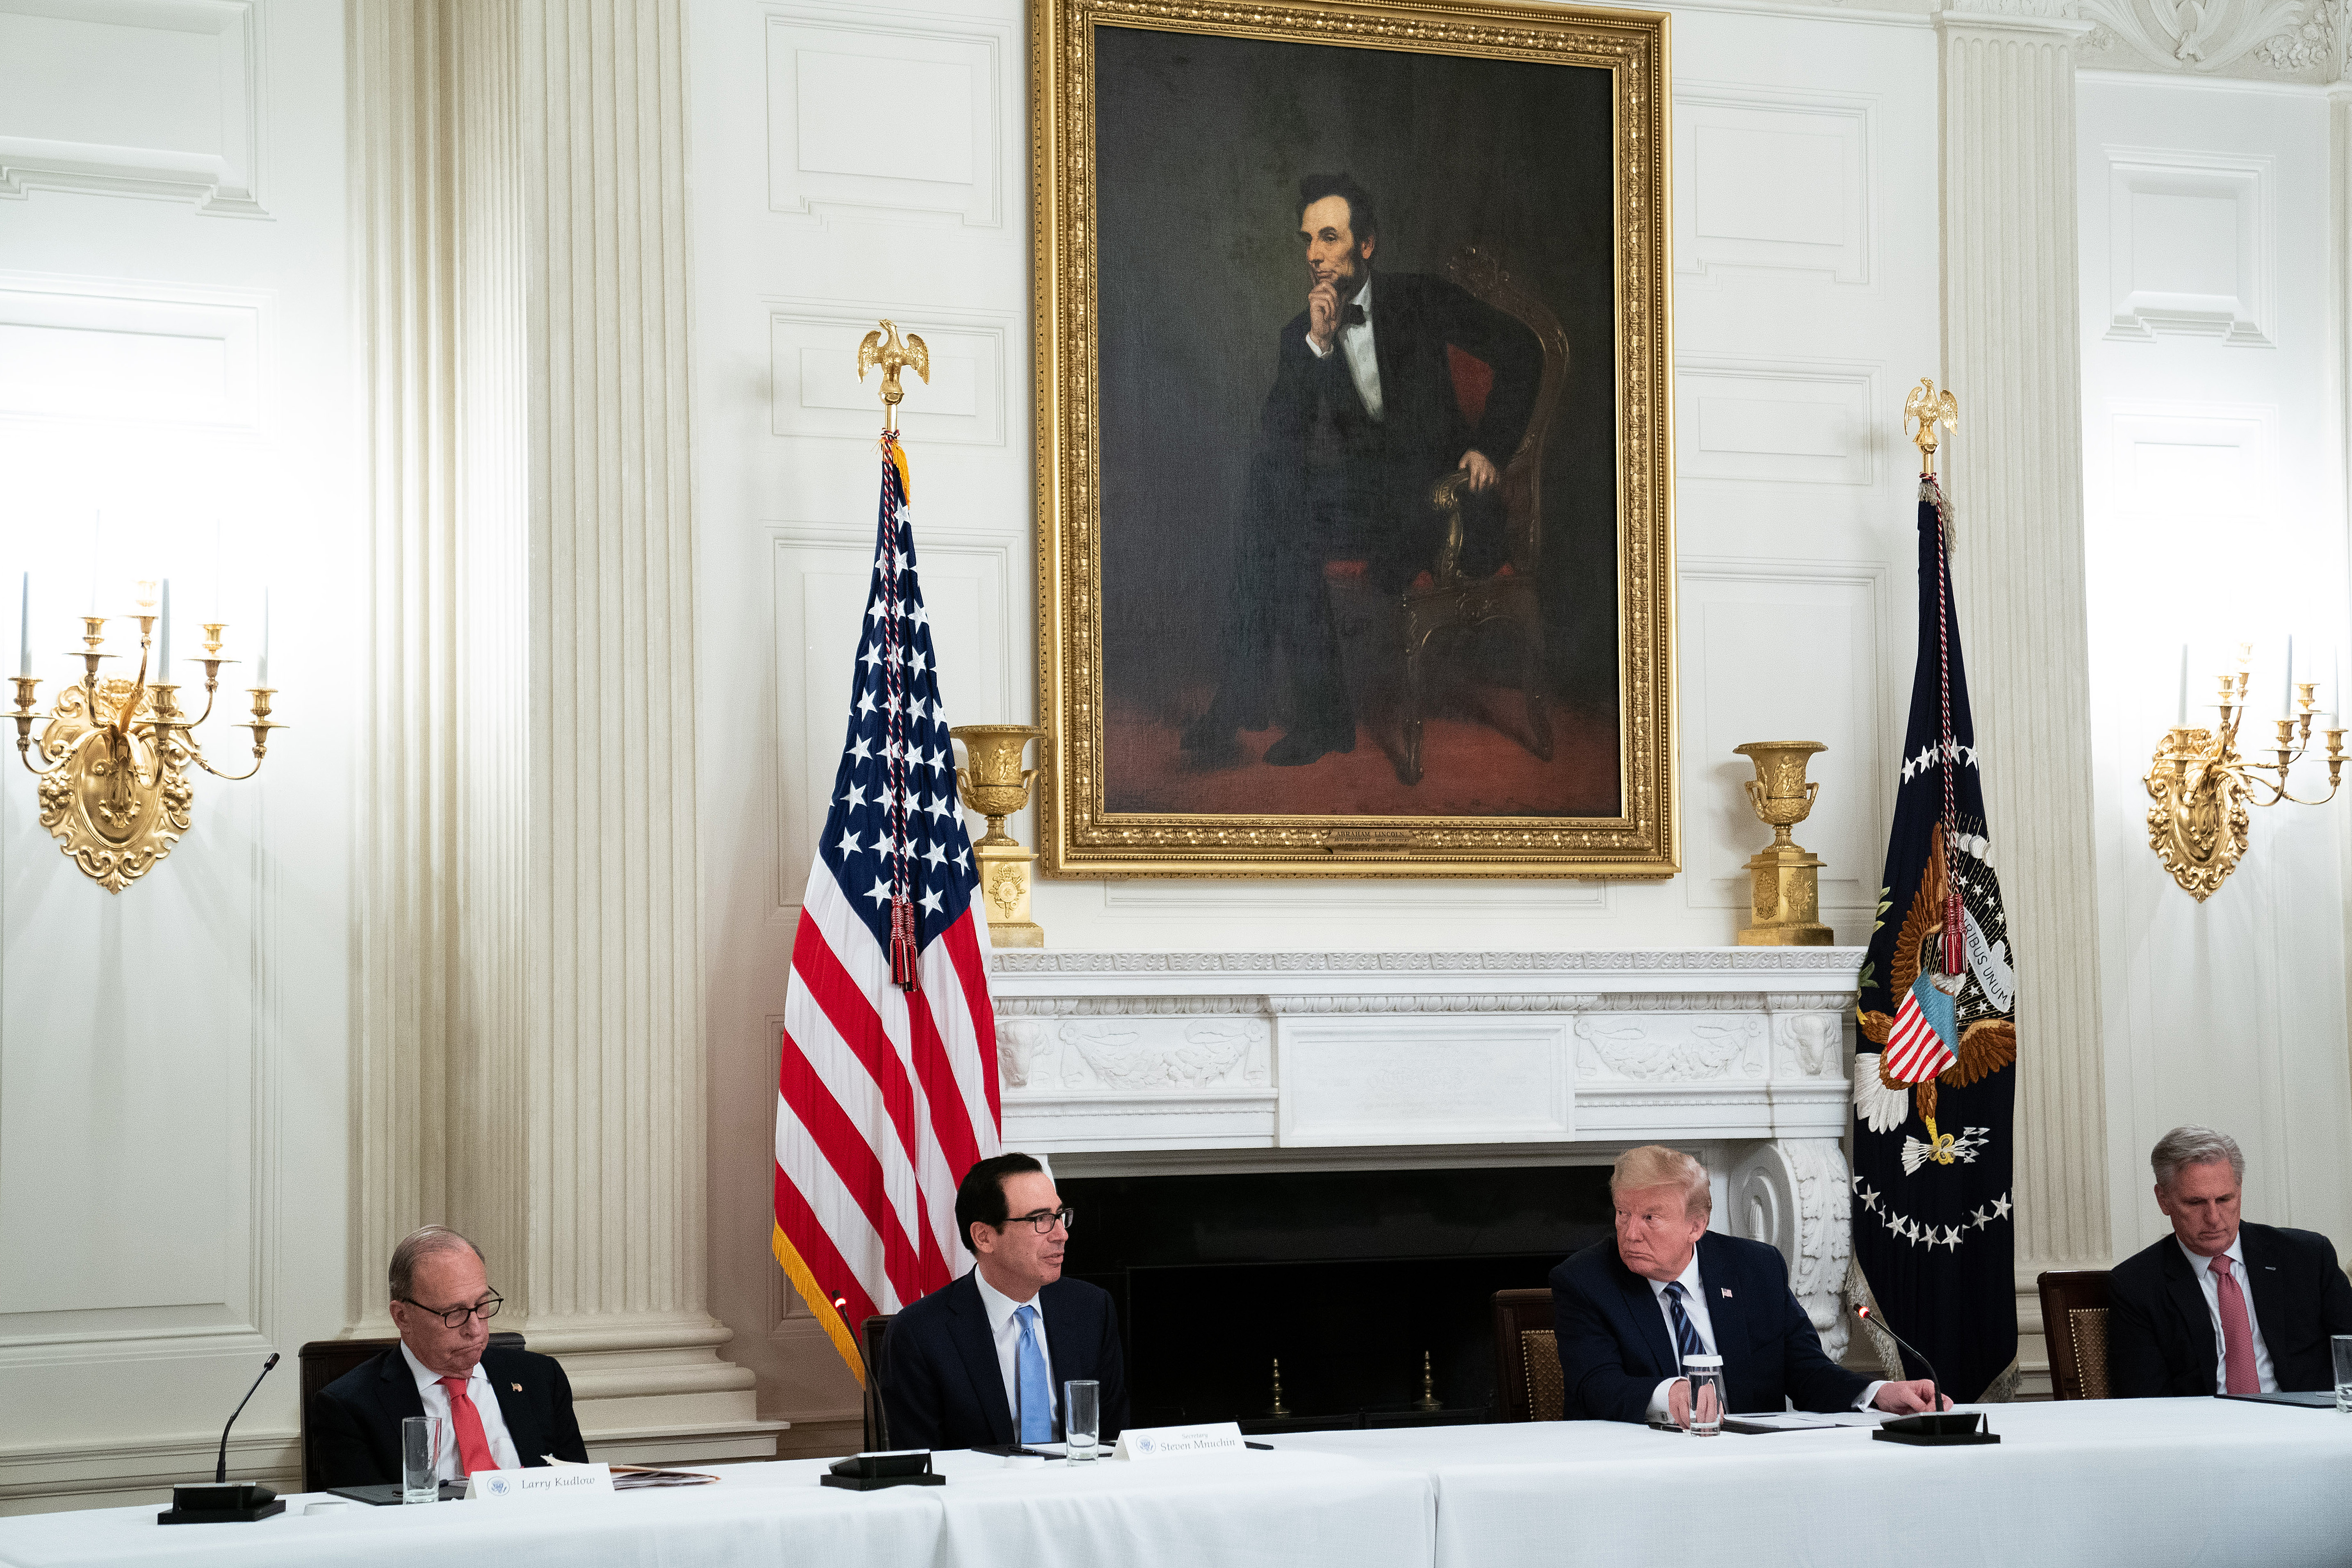 """WASHINGTON, DC - MAY 08: (L-R) White House Economic Council Director Larry Kudlow, Treasury Secretary Steven Mnuchin, President Donald Trump and House Minority Leader Kevin McCarthy (R-CA) meet with Congressional Republicans in the State Dining Room at the White House May 08, 2020 in Washington, DC. Trump insisted that the national economy will recover this year from the damage caused by novel coronavirus pandemic, saying, """"I'm calling it the transition to greatness."""" (Photo by Anna Moneymaker-Pool/Getty Images)"""